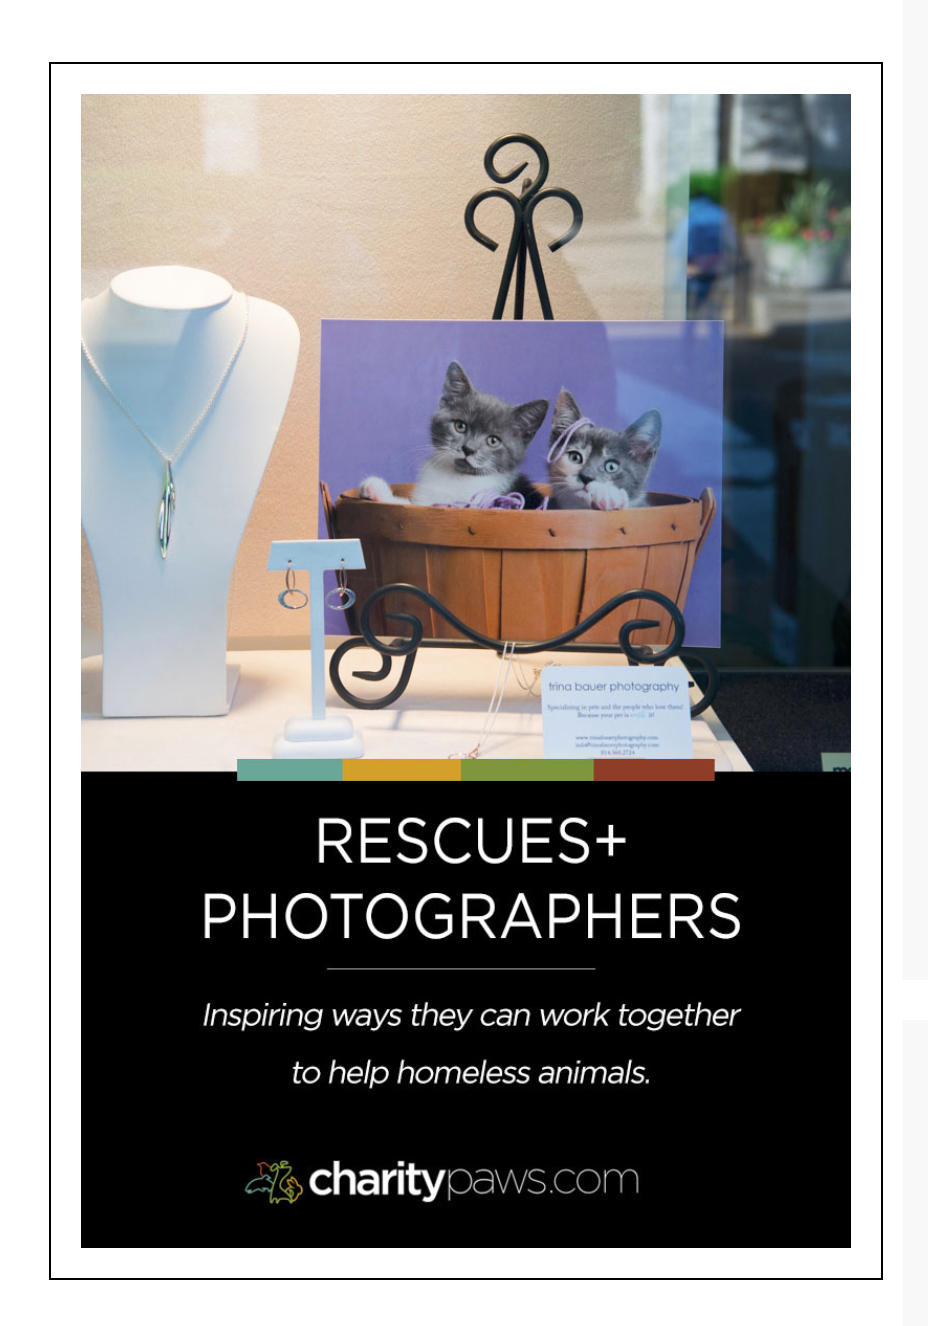 Charity Paws - Rescues and photographers